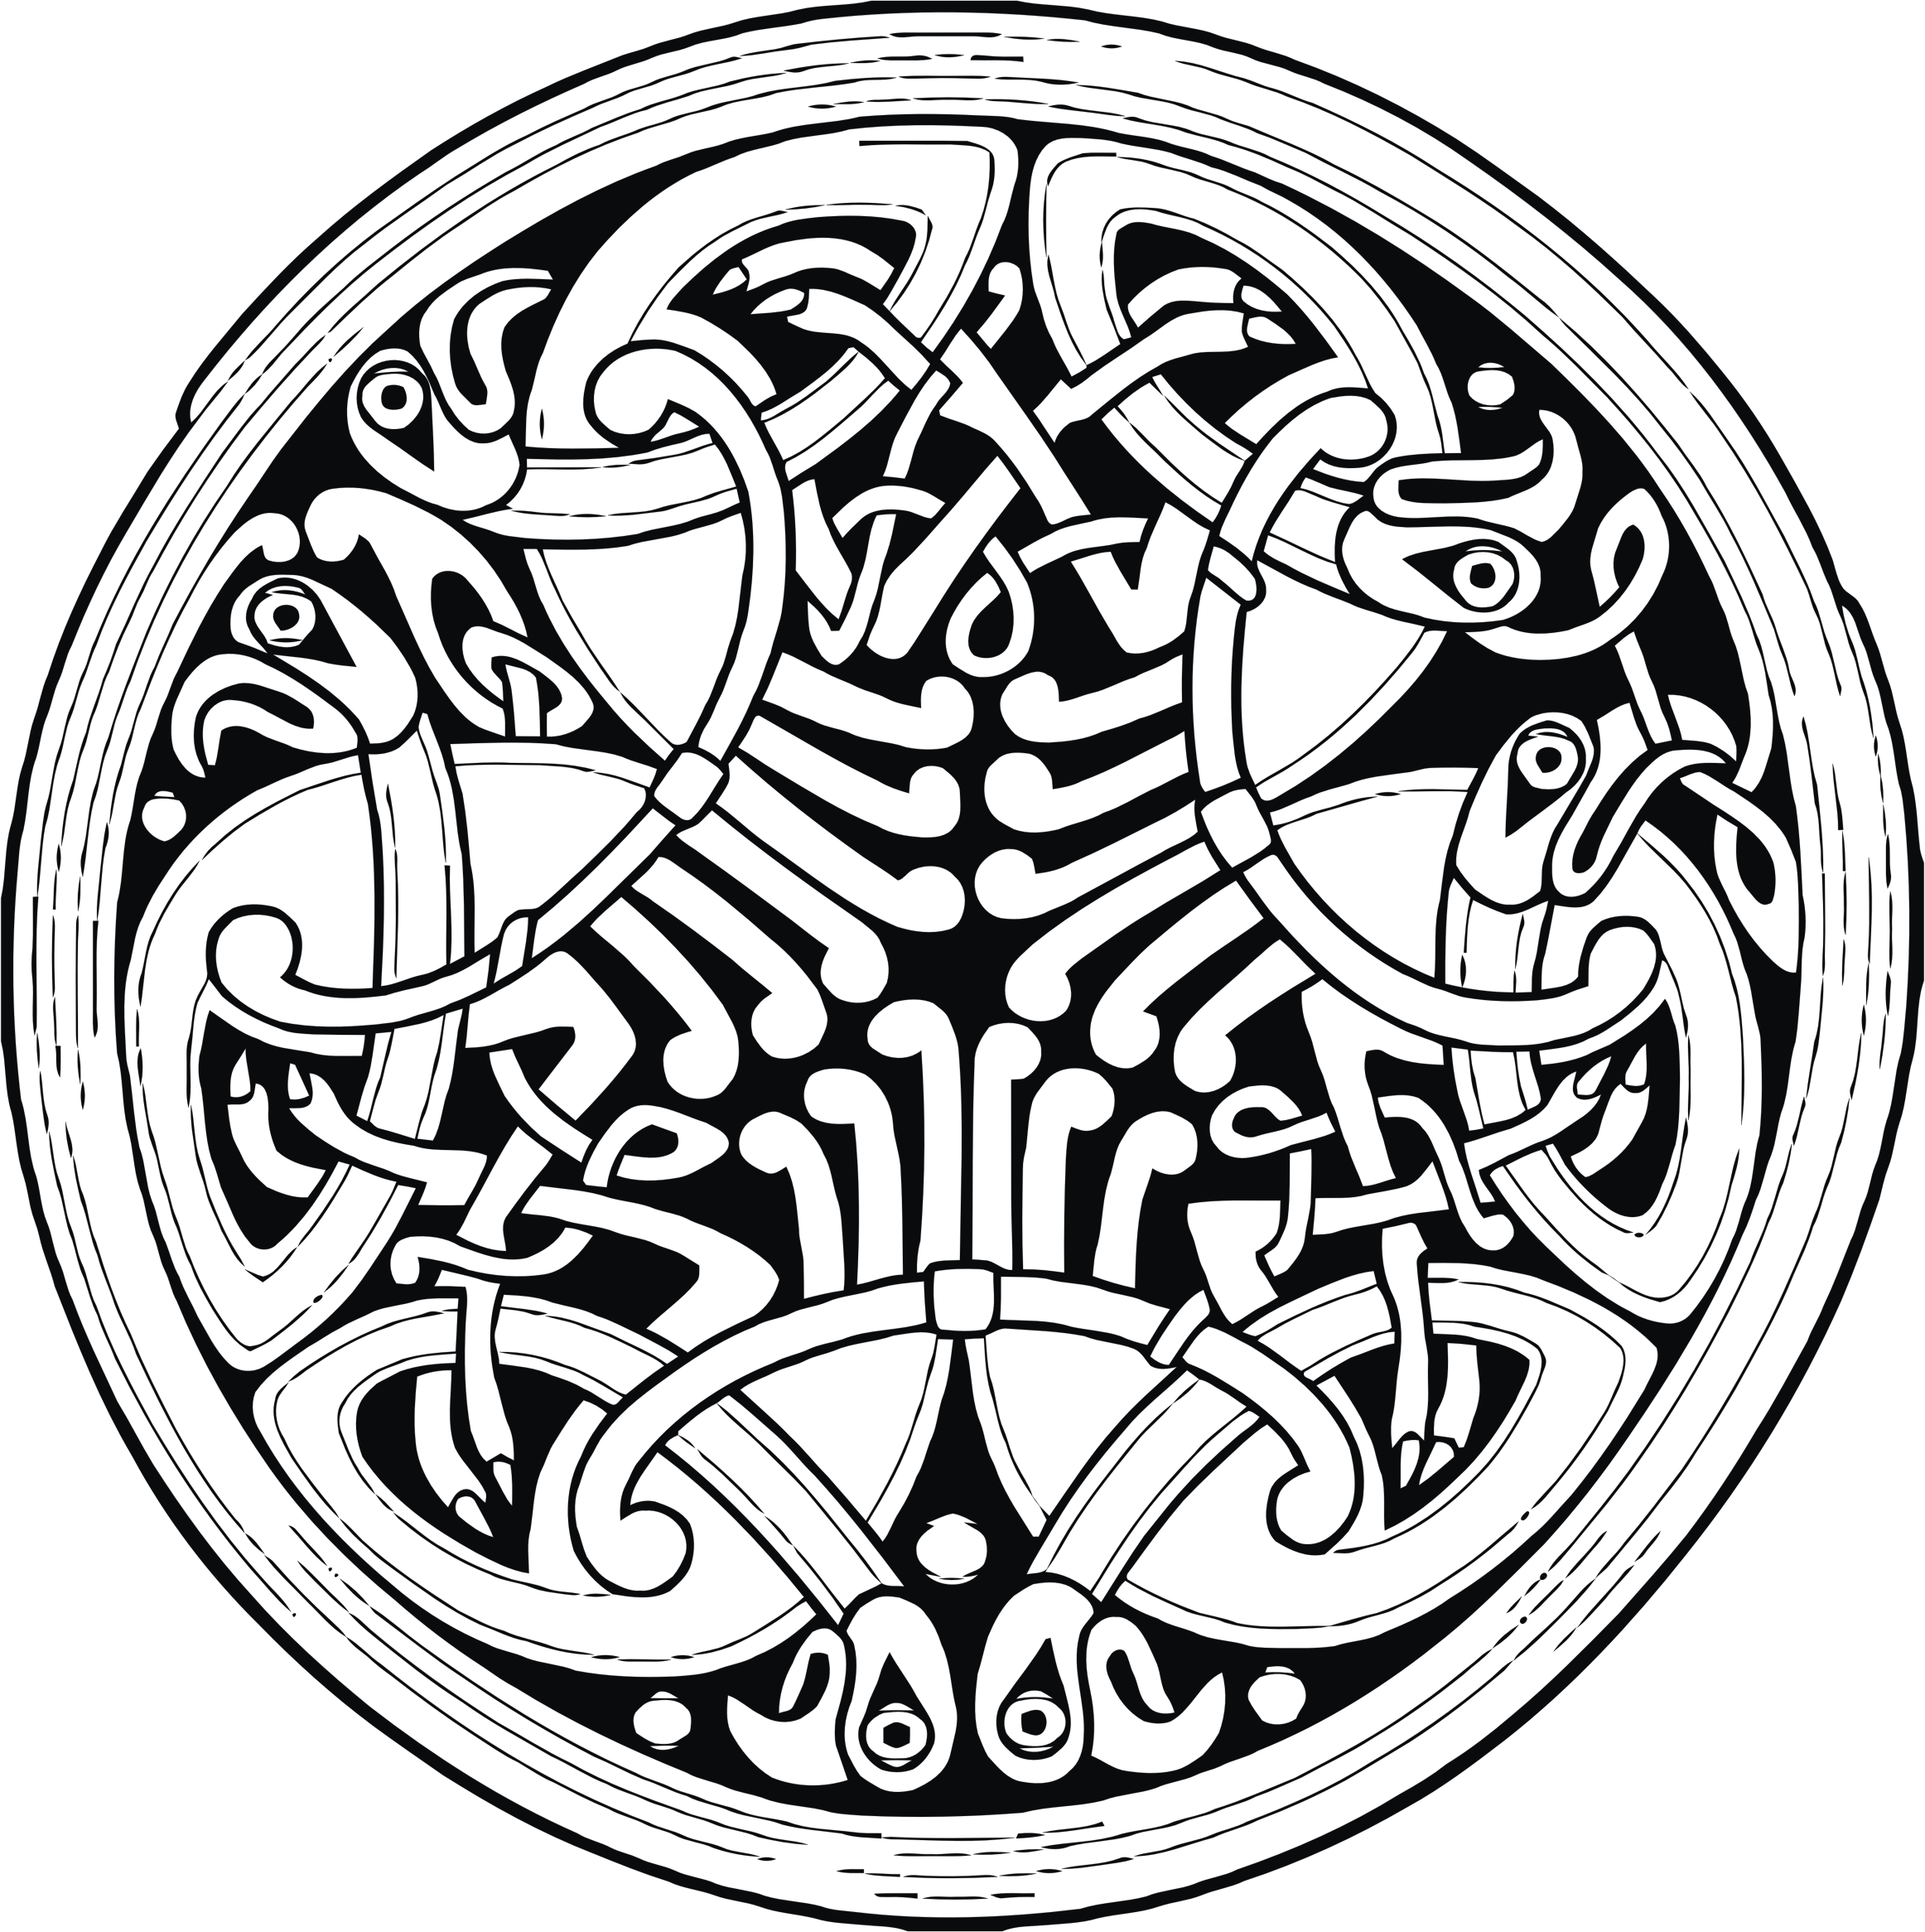 celtic drawings celtic tattoo designs tattoos with meaning celtic drawings